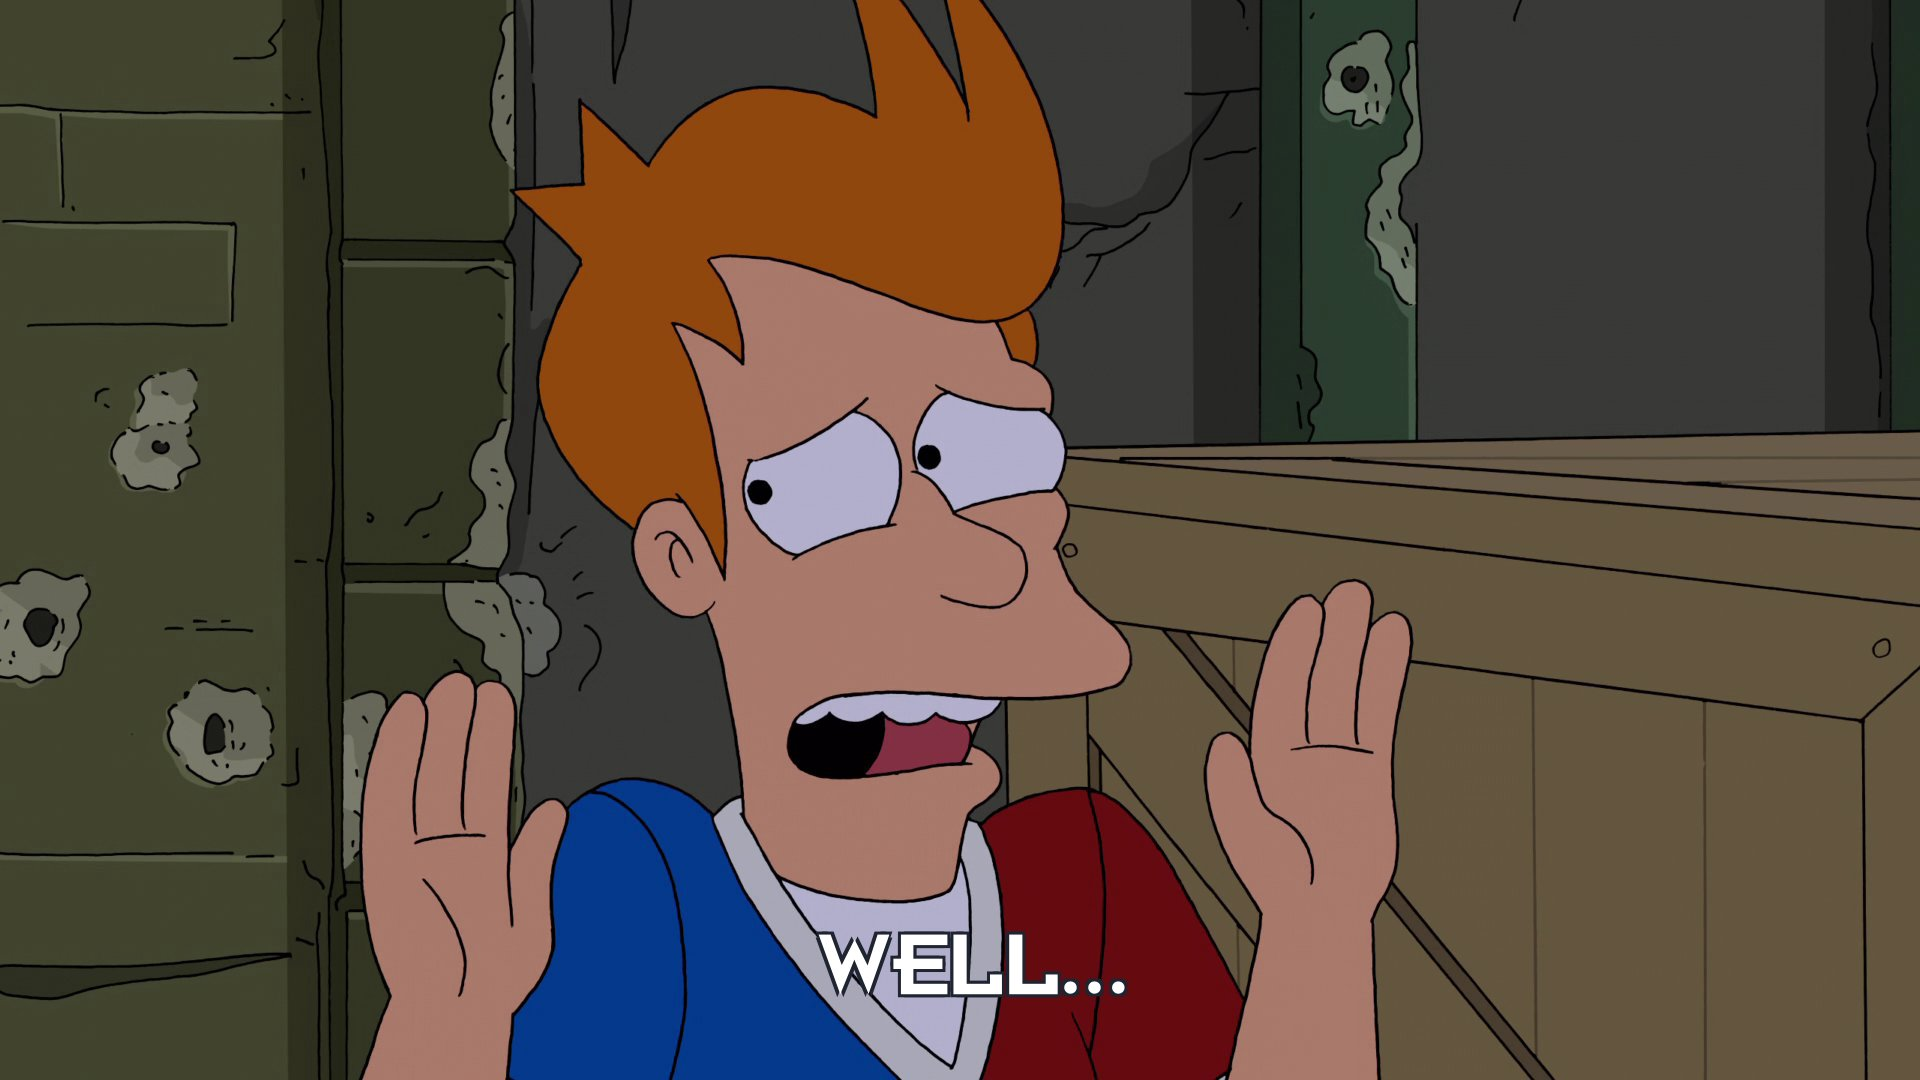 Philip J Fry: Well...